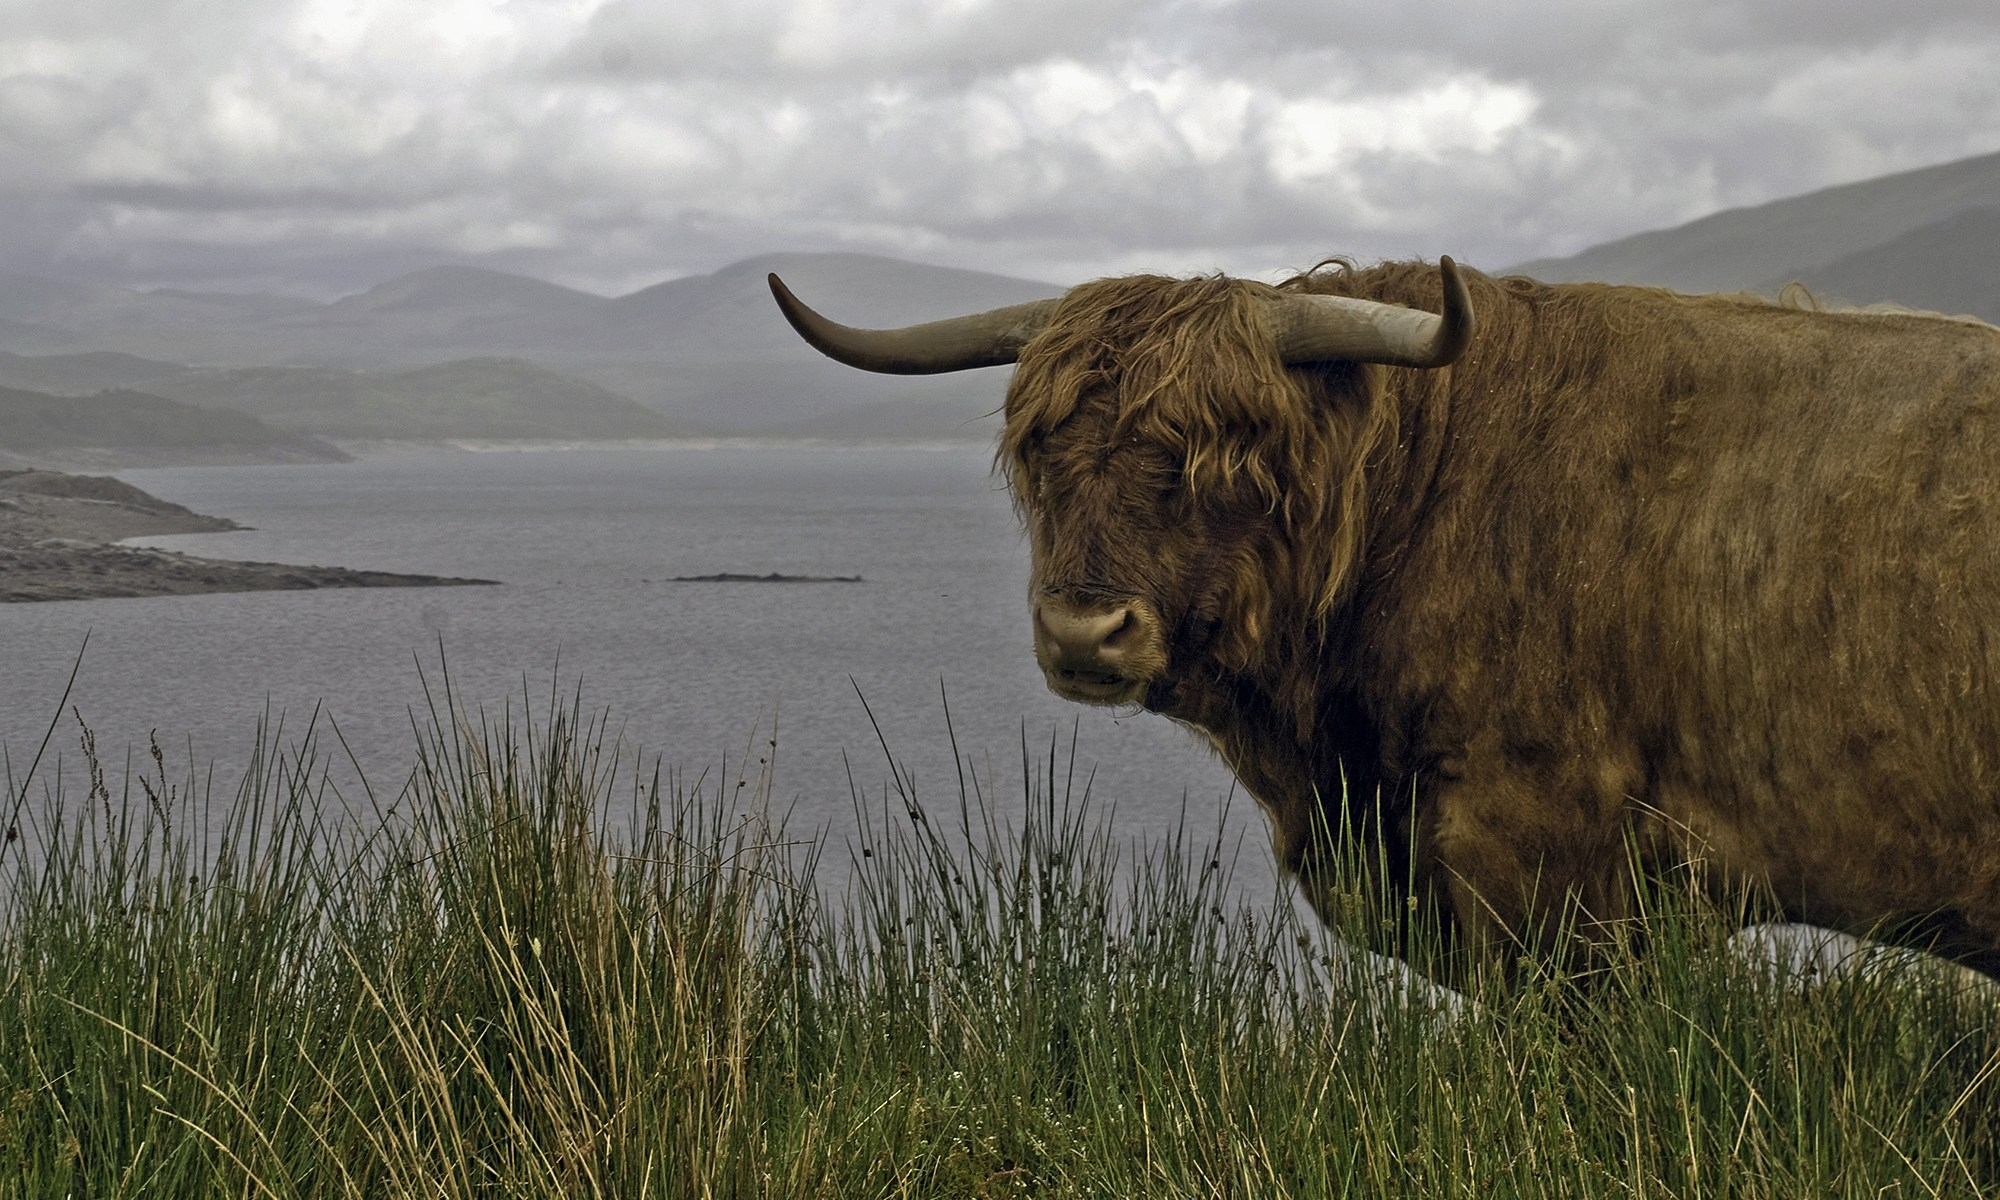 Lochside Highland Bull, Scotland